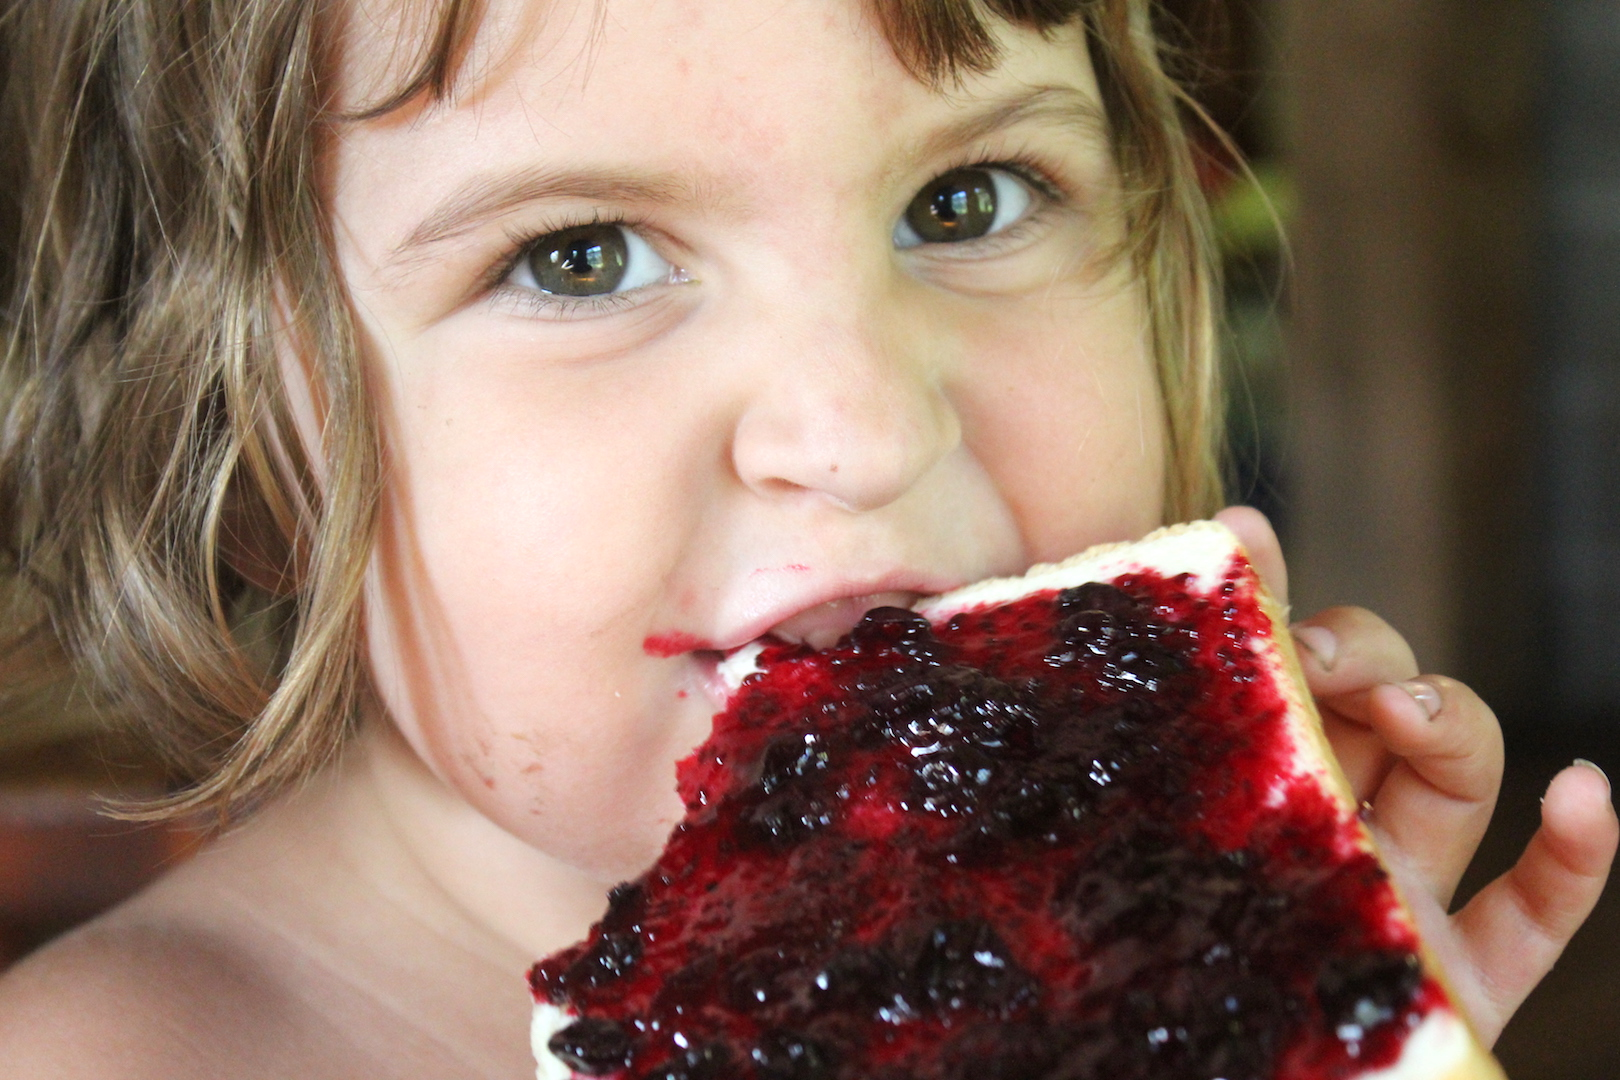 Child Eating homemade Blackcurrant Jam